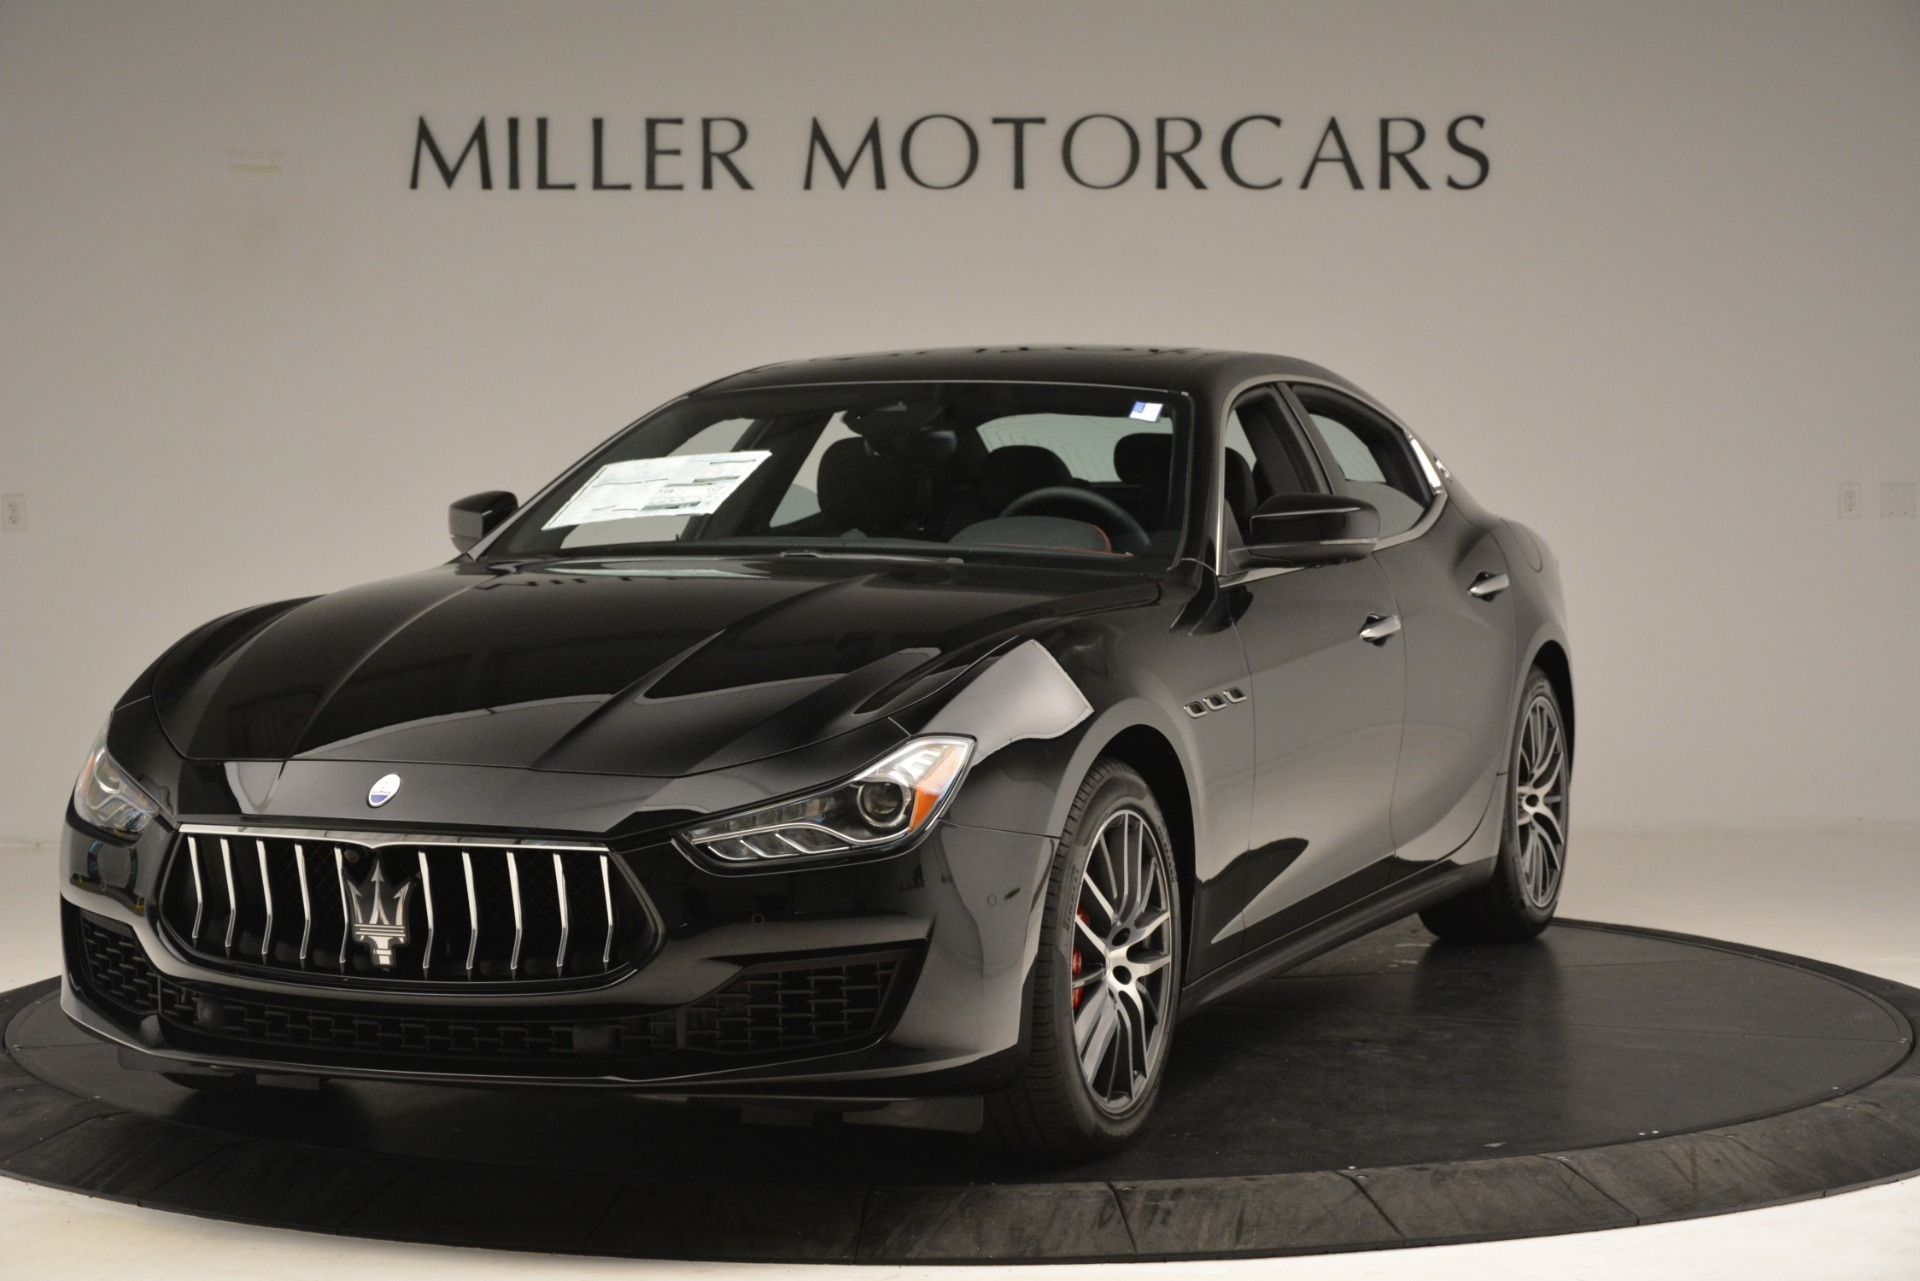 New 2019 Maserati Ghibli S Q4 for sale $59,900 at Maserati of Westport in Westport CT 06880 1